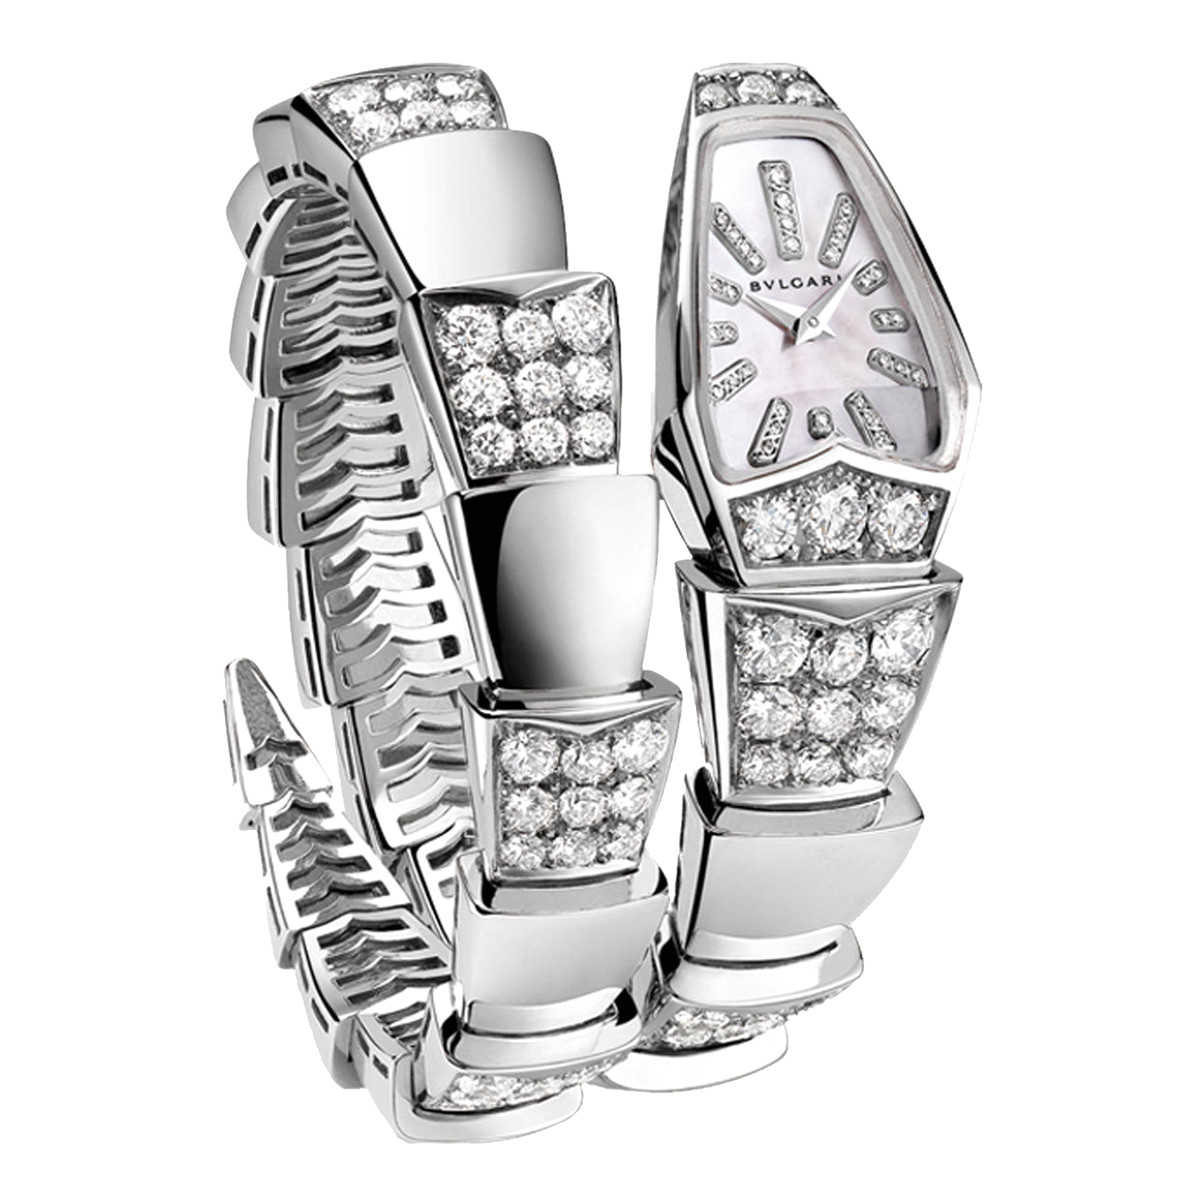 Serpenti Scagile White Gold & Diamonds (101787)